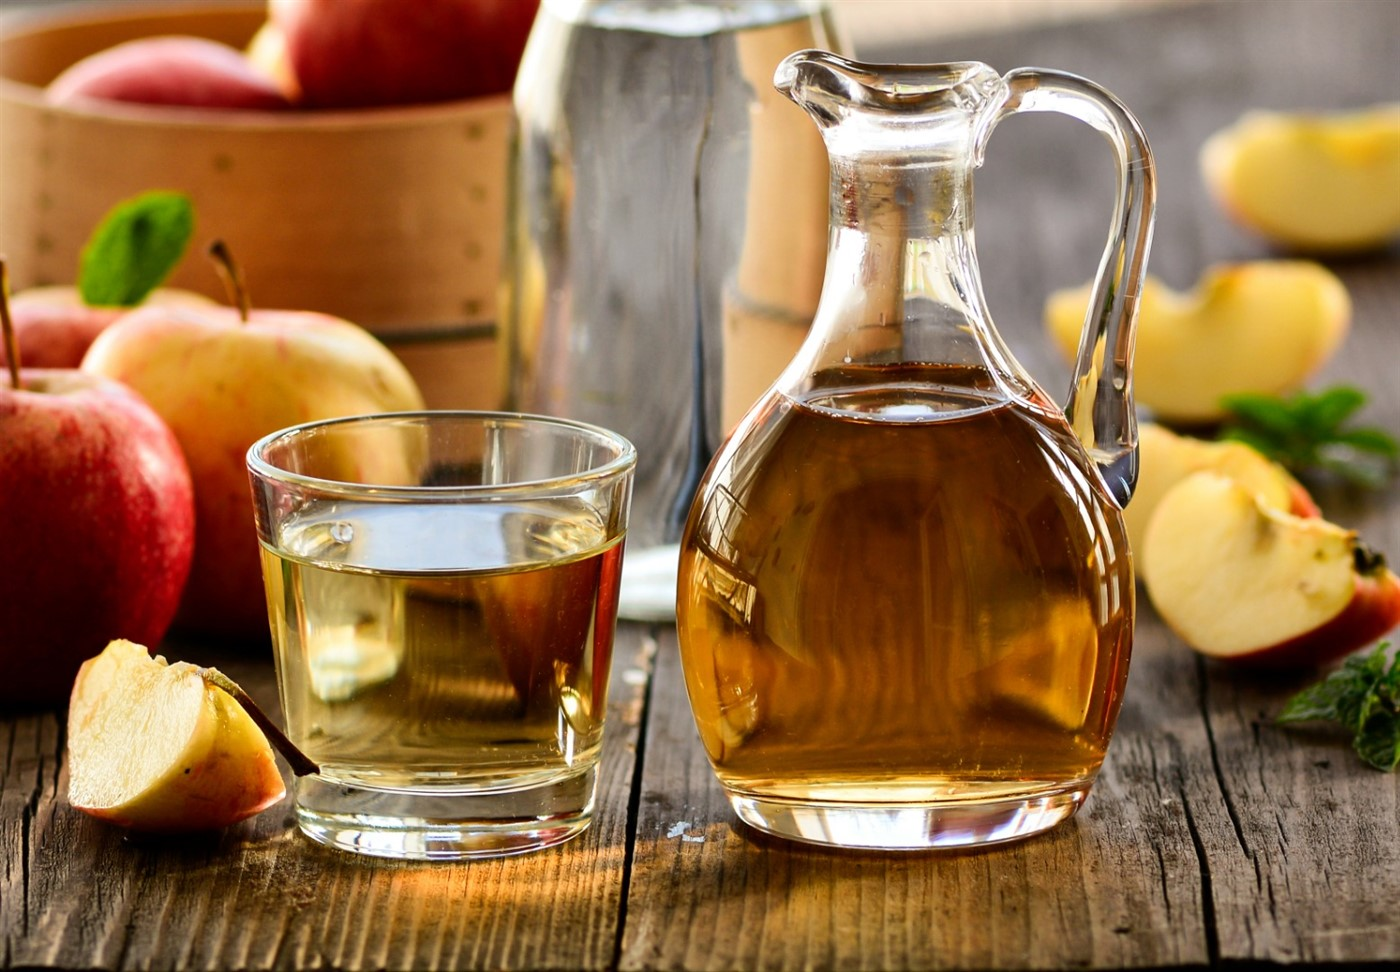 a glass of tea next to a pitcher of tea and apples